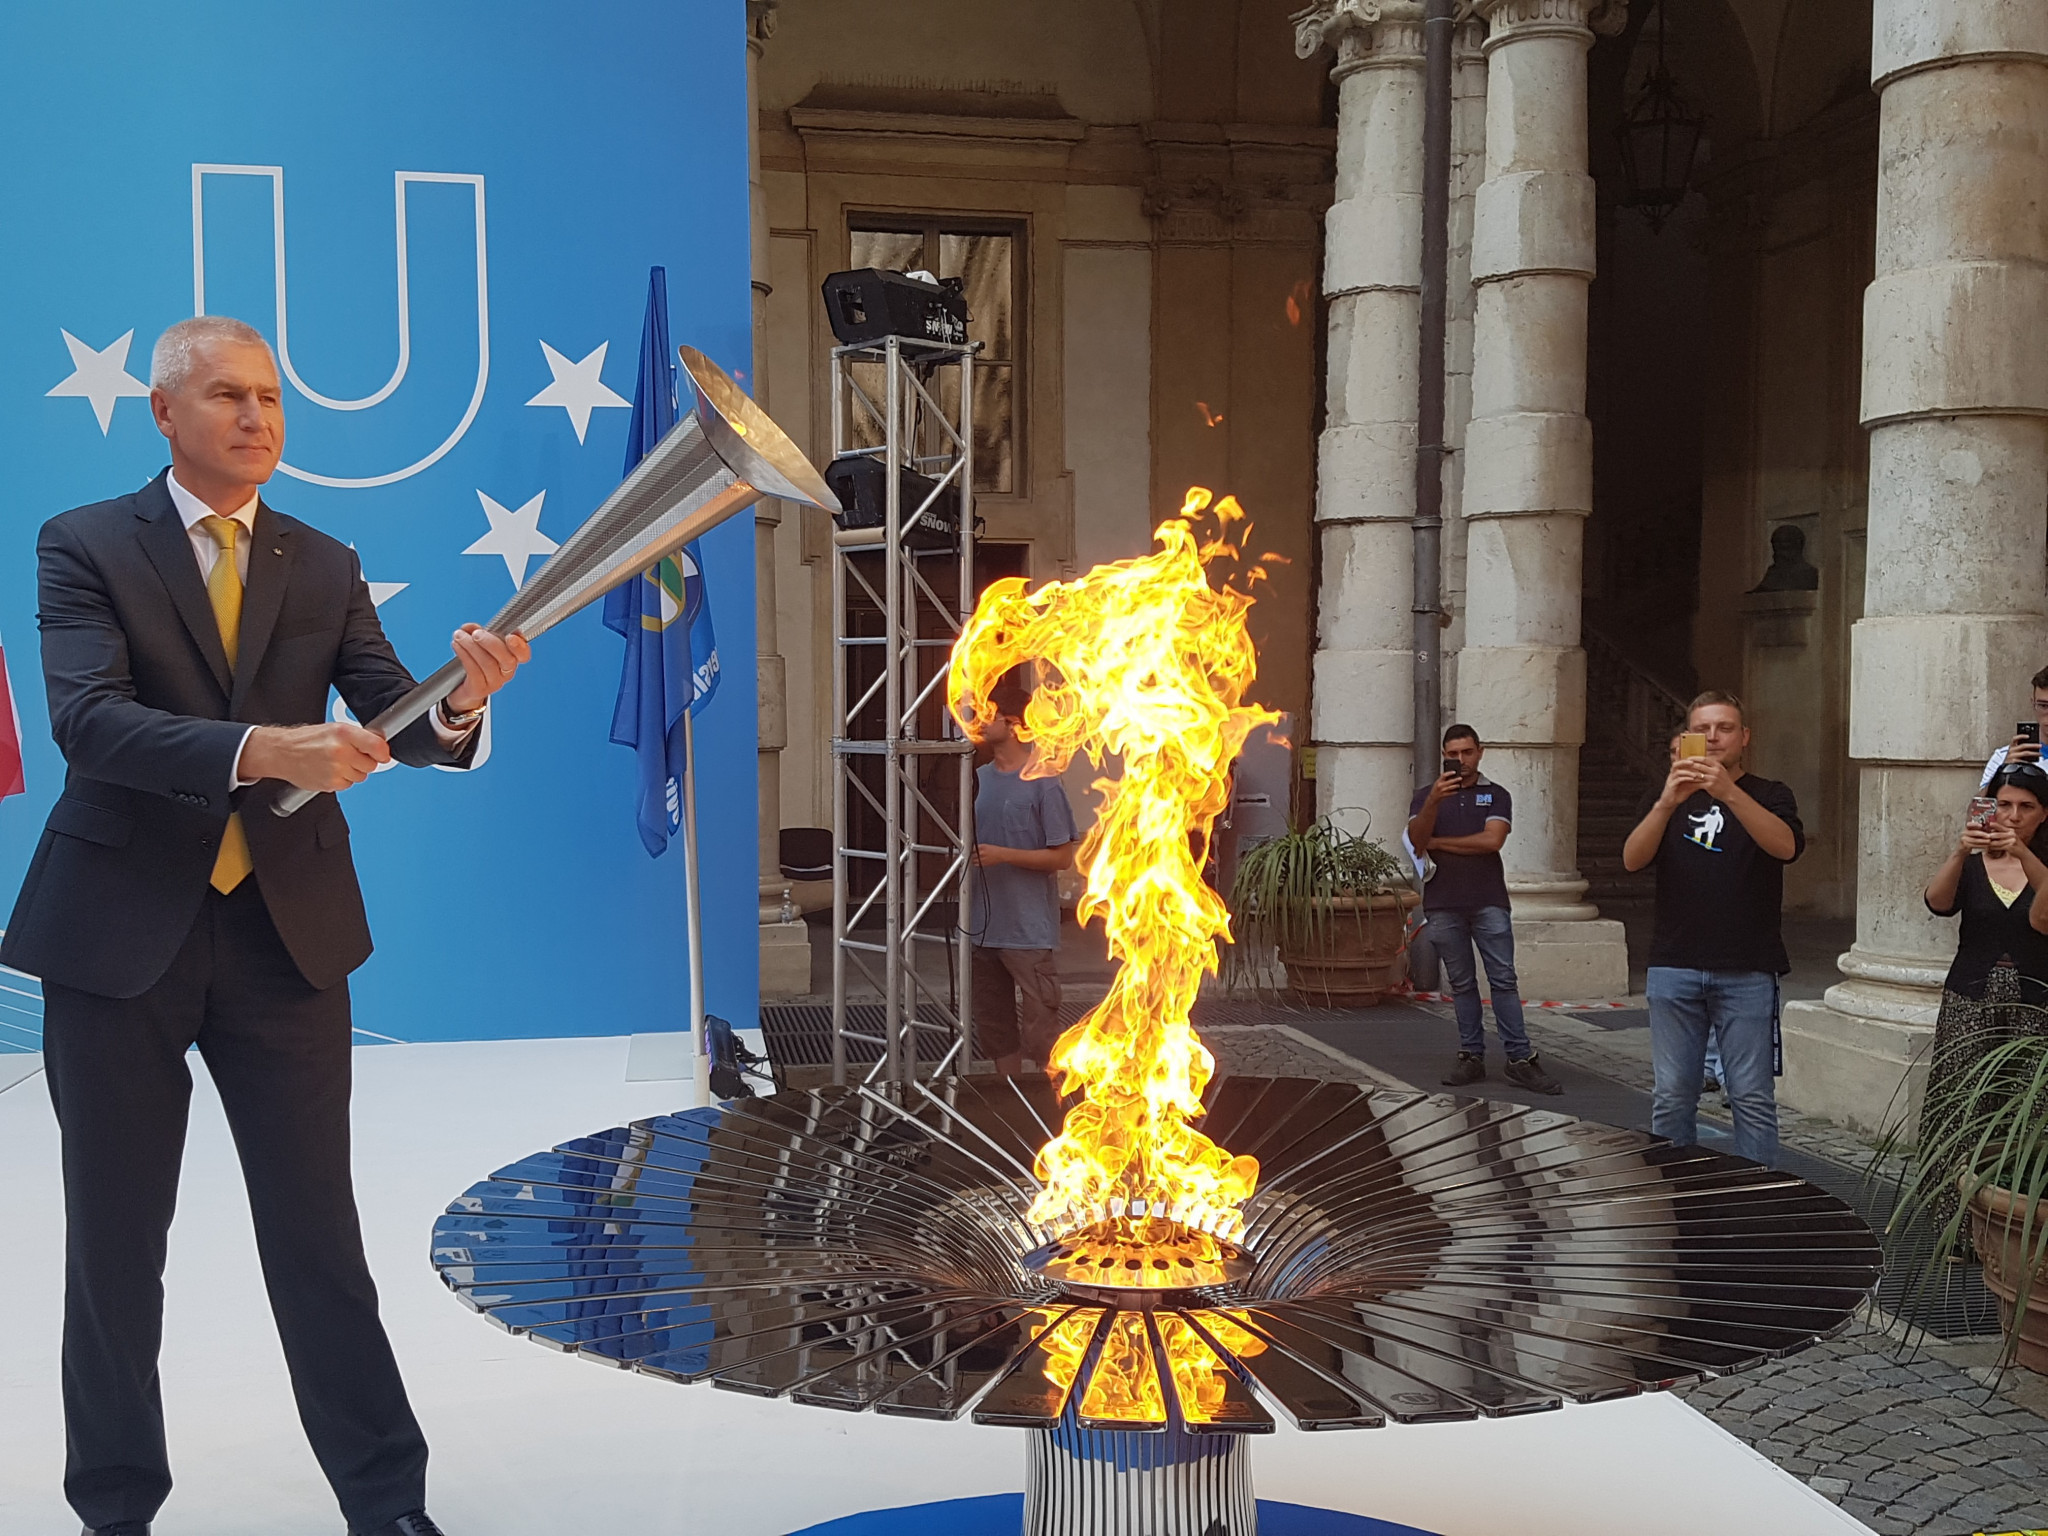 The Torch for Krasnoyarsk 2019 was lit at a special ceremony in Turin on Thursday ©FISU